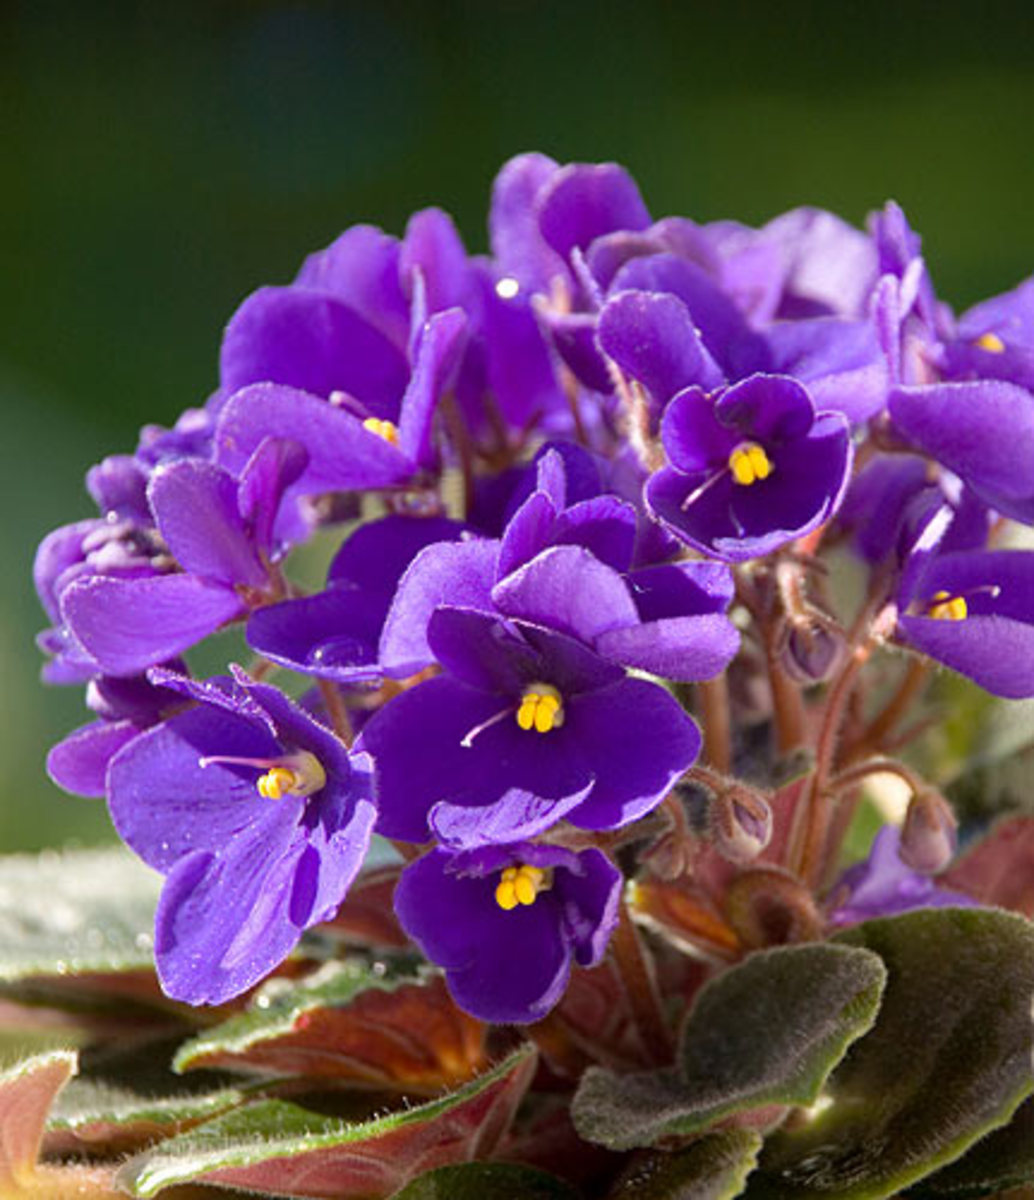 Violets can help relieve menopausal symptoms.